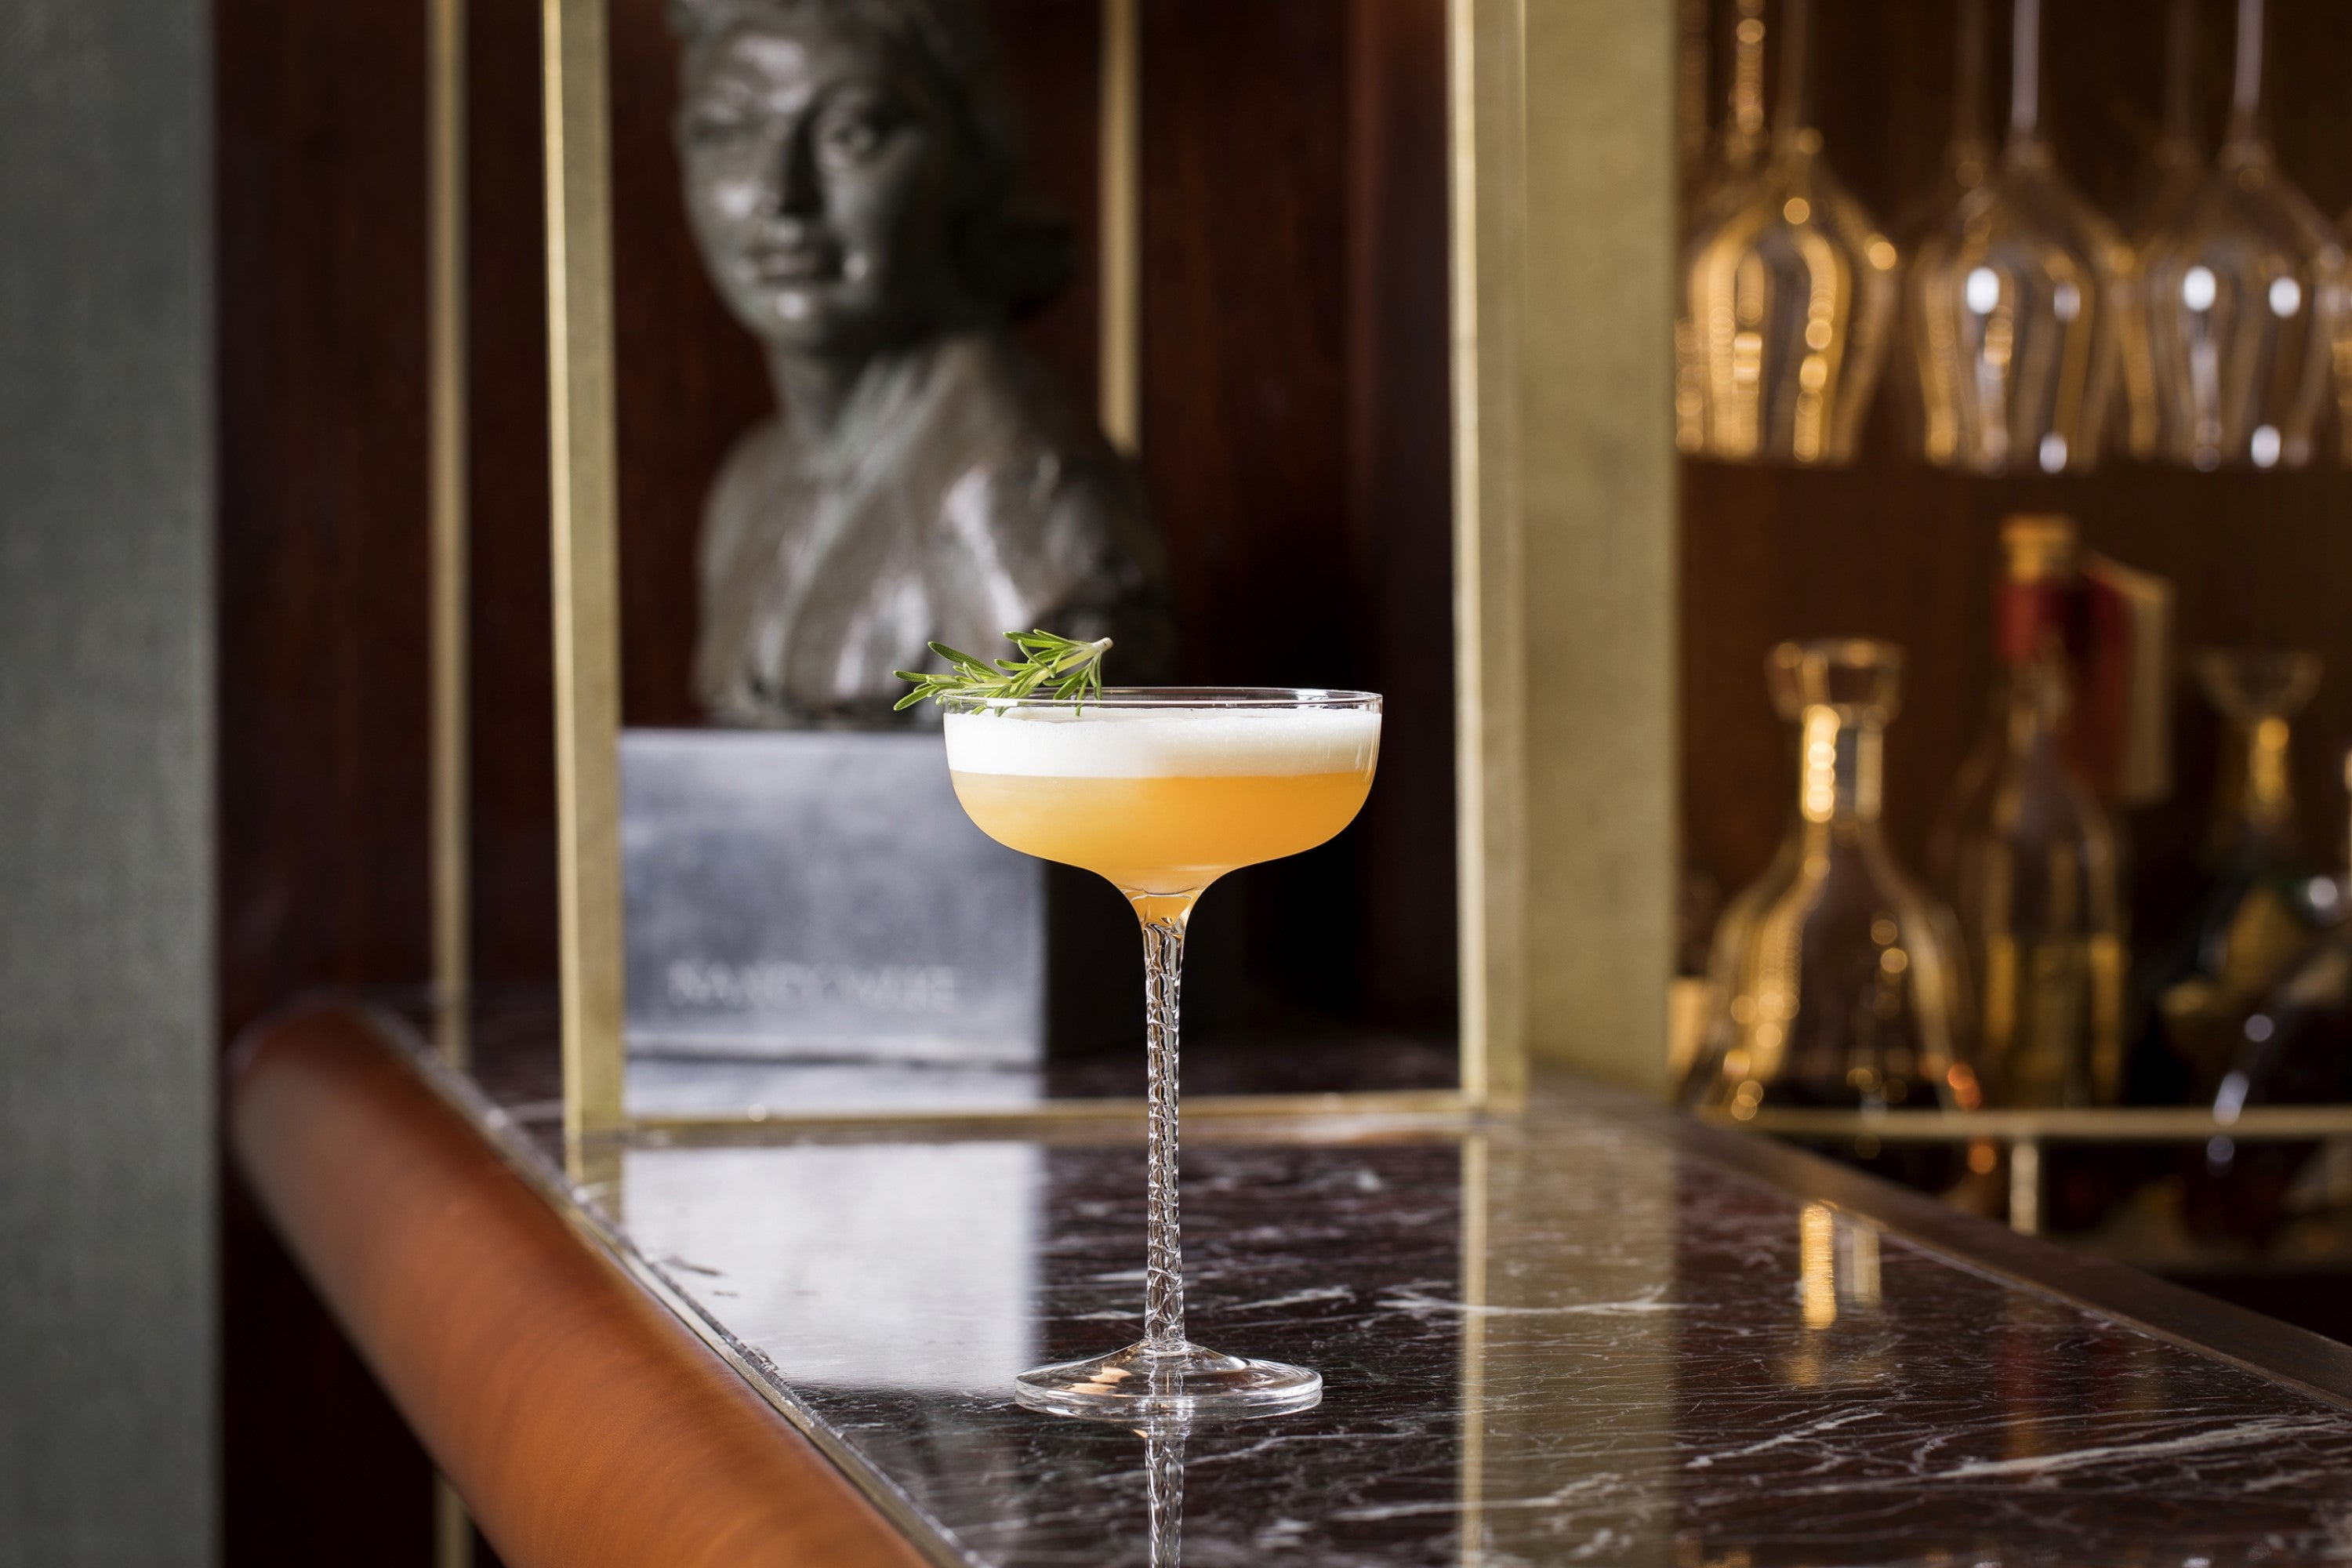 The White Mouse, the signature cocktail of The American Bar